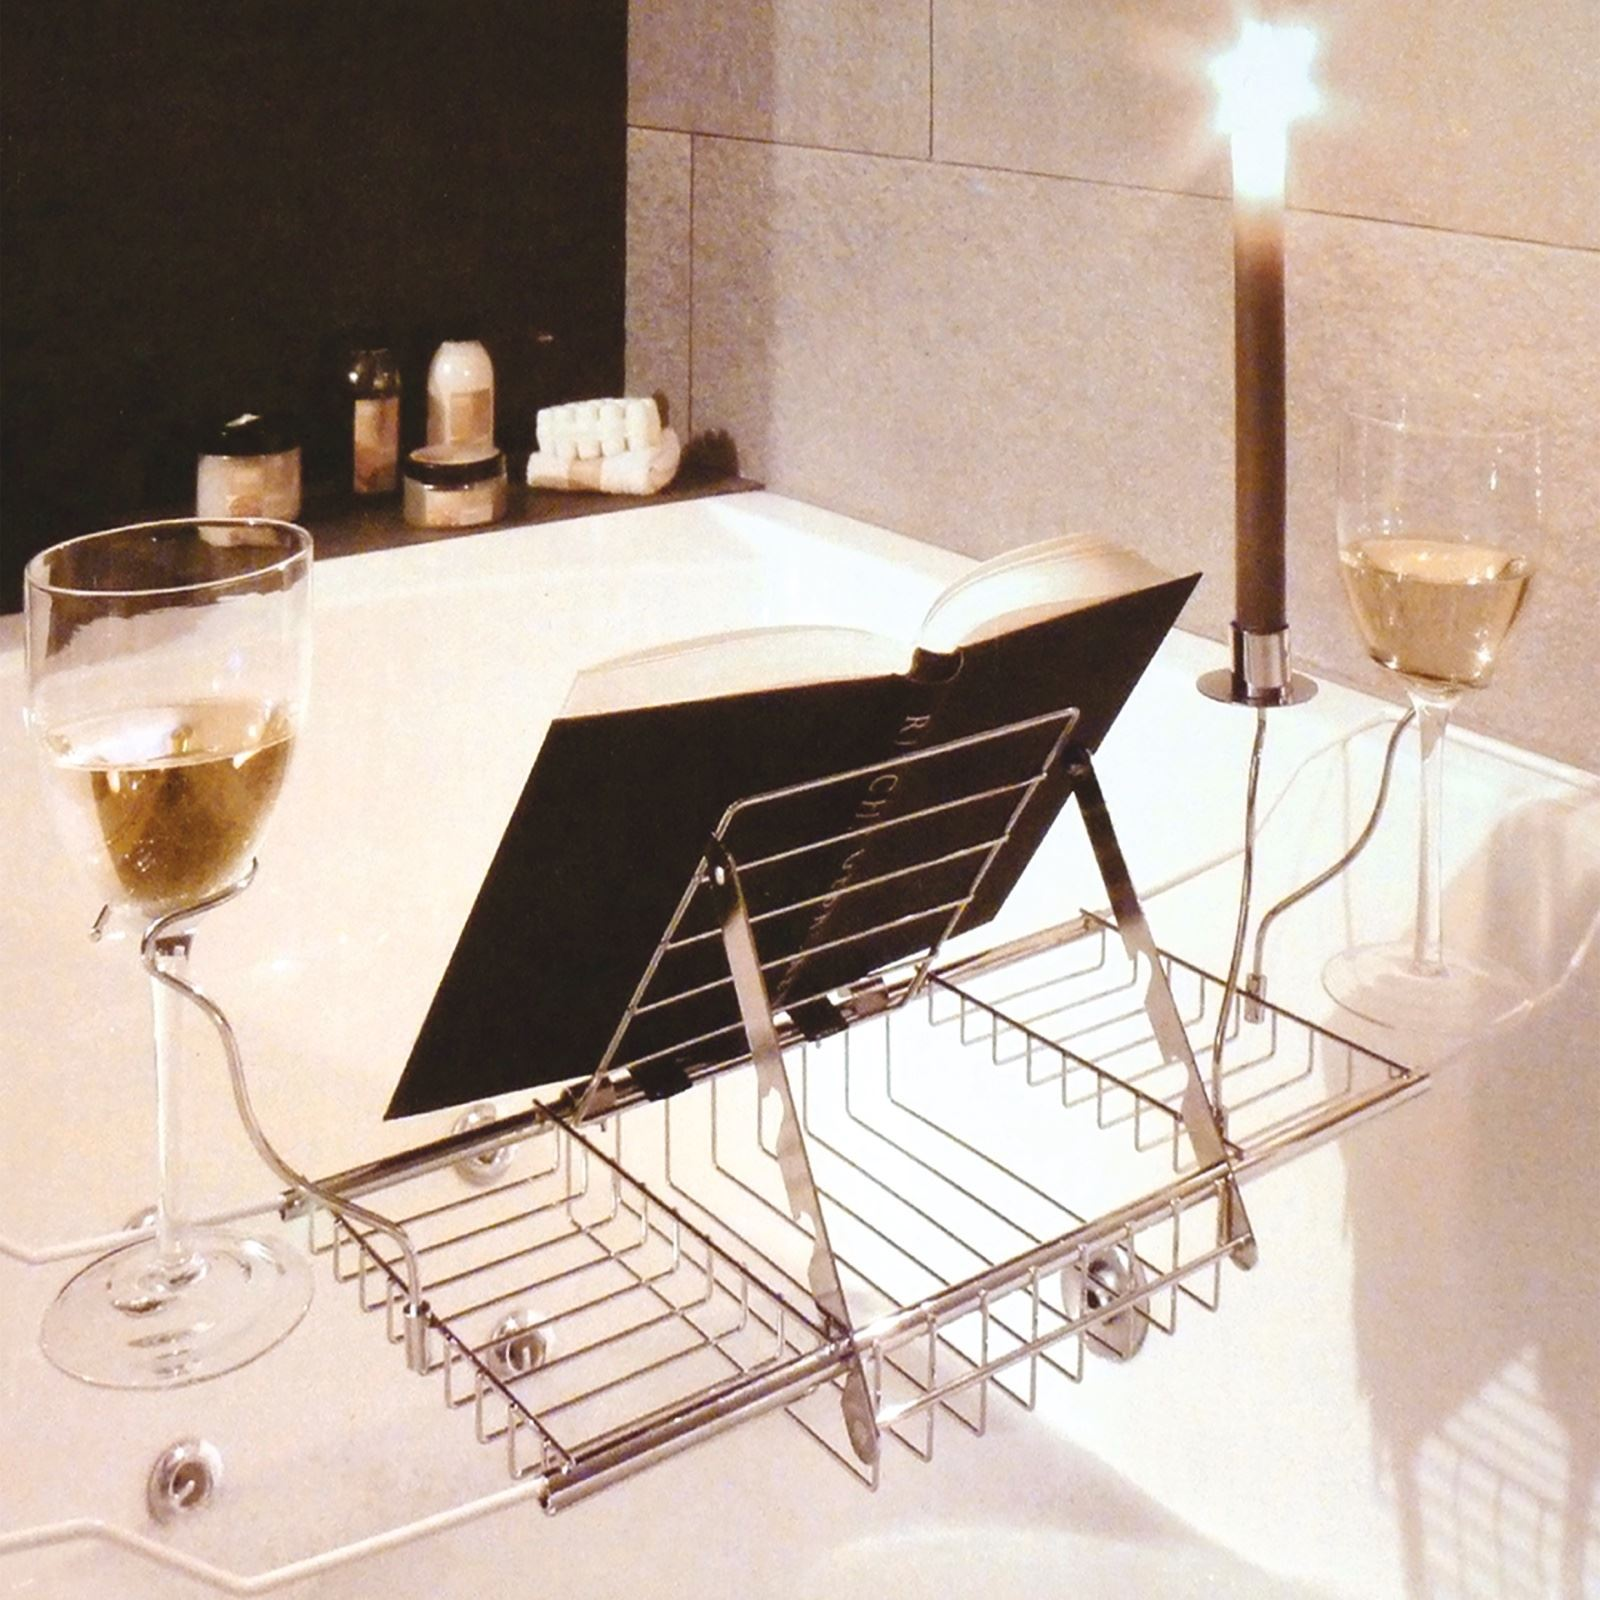 Adjustable Bath Rack Book Stand Bathtub Shelf Tray Glass Holder | eBay